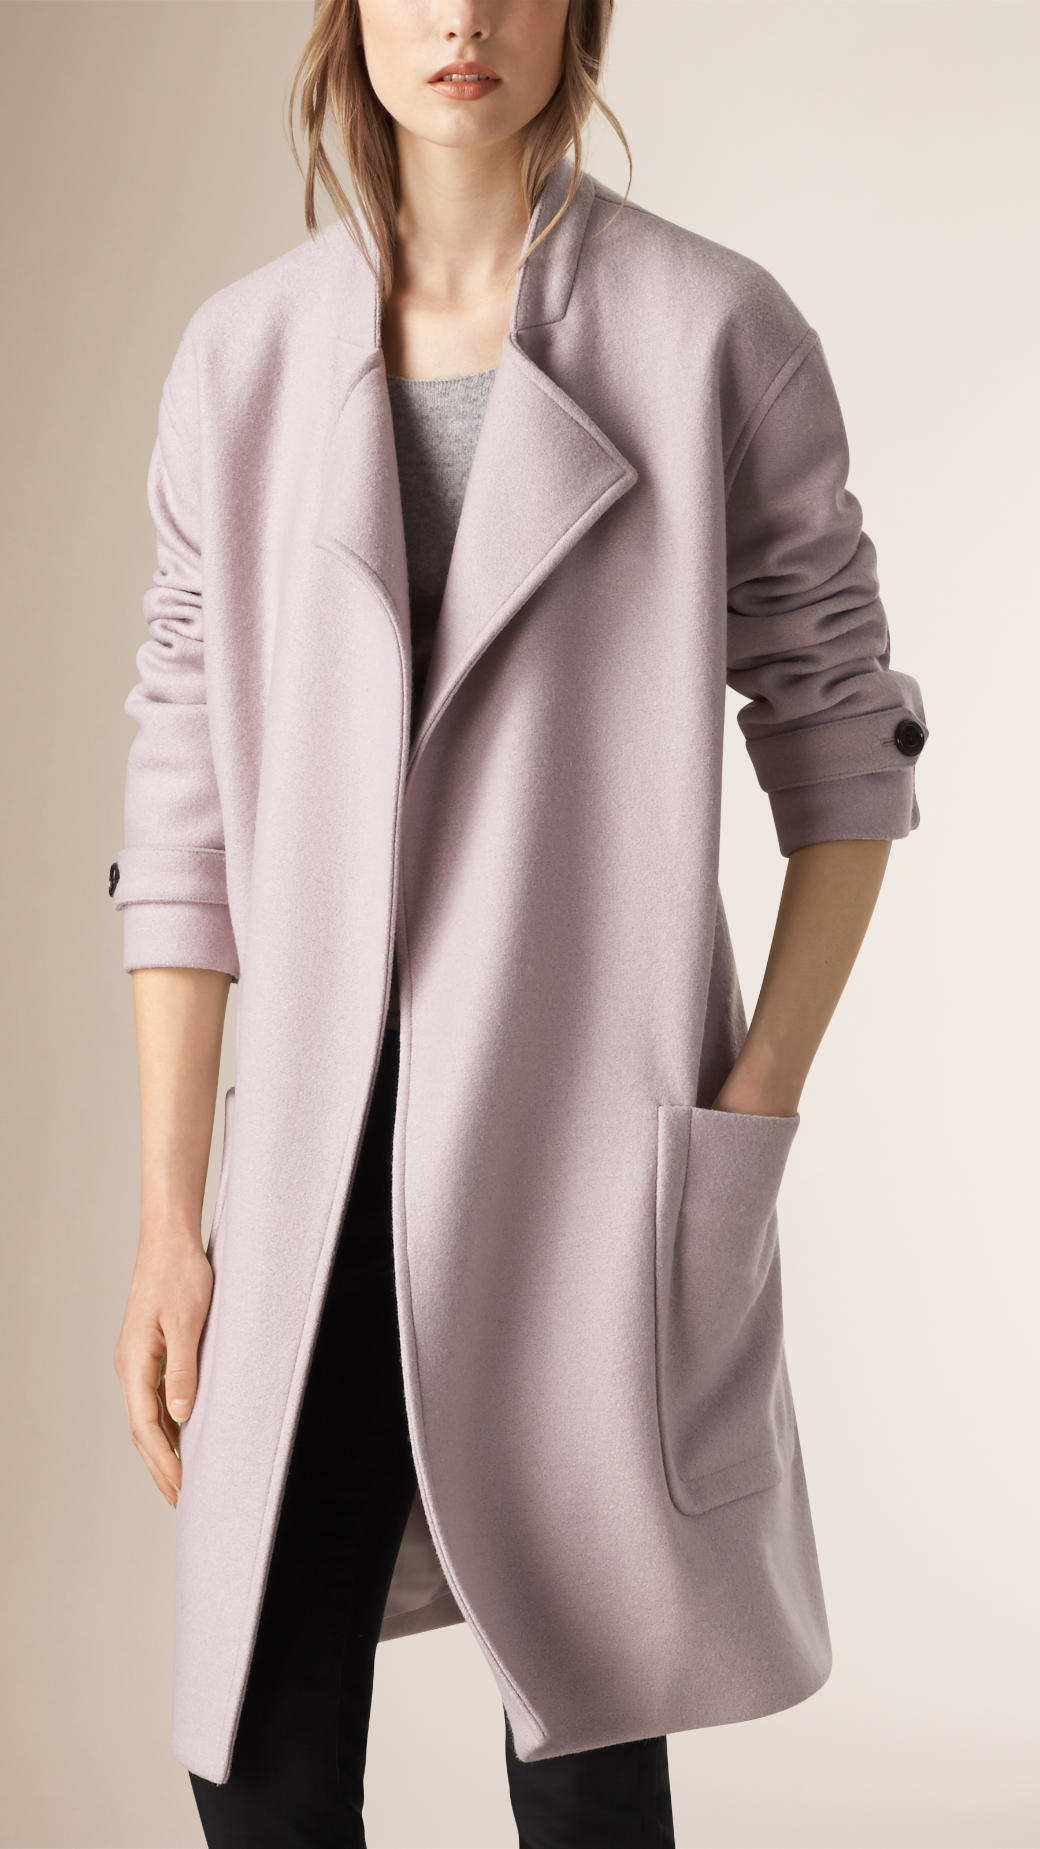 Burberry Wool Belted Wrap Coat in Natural | Lyst